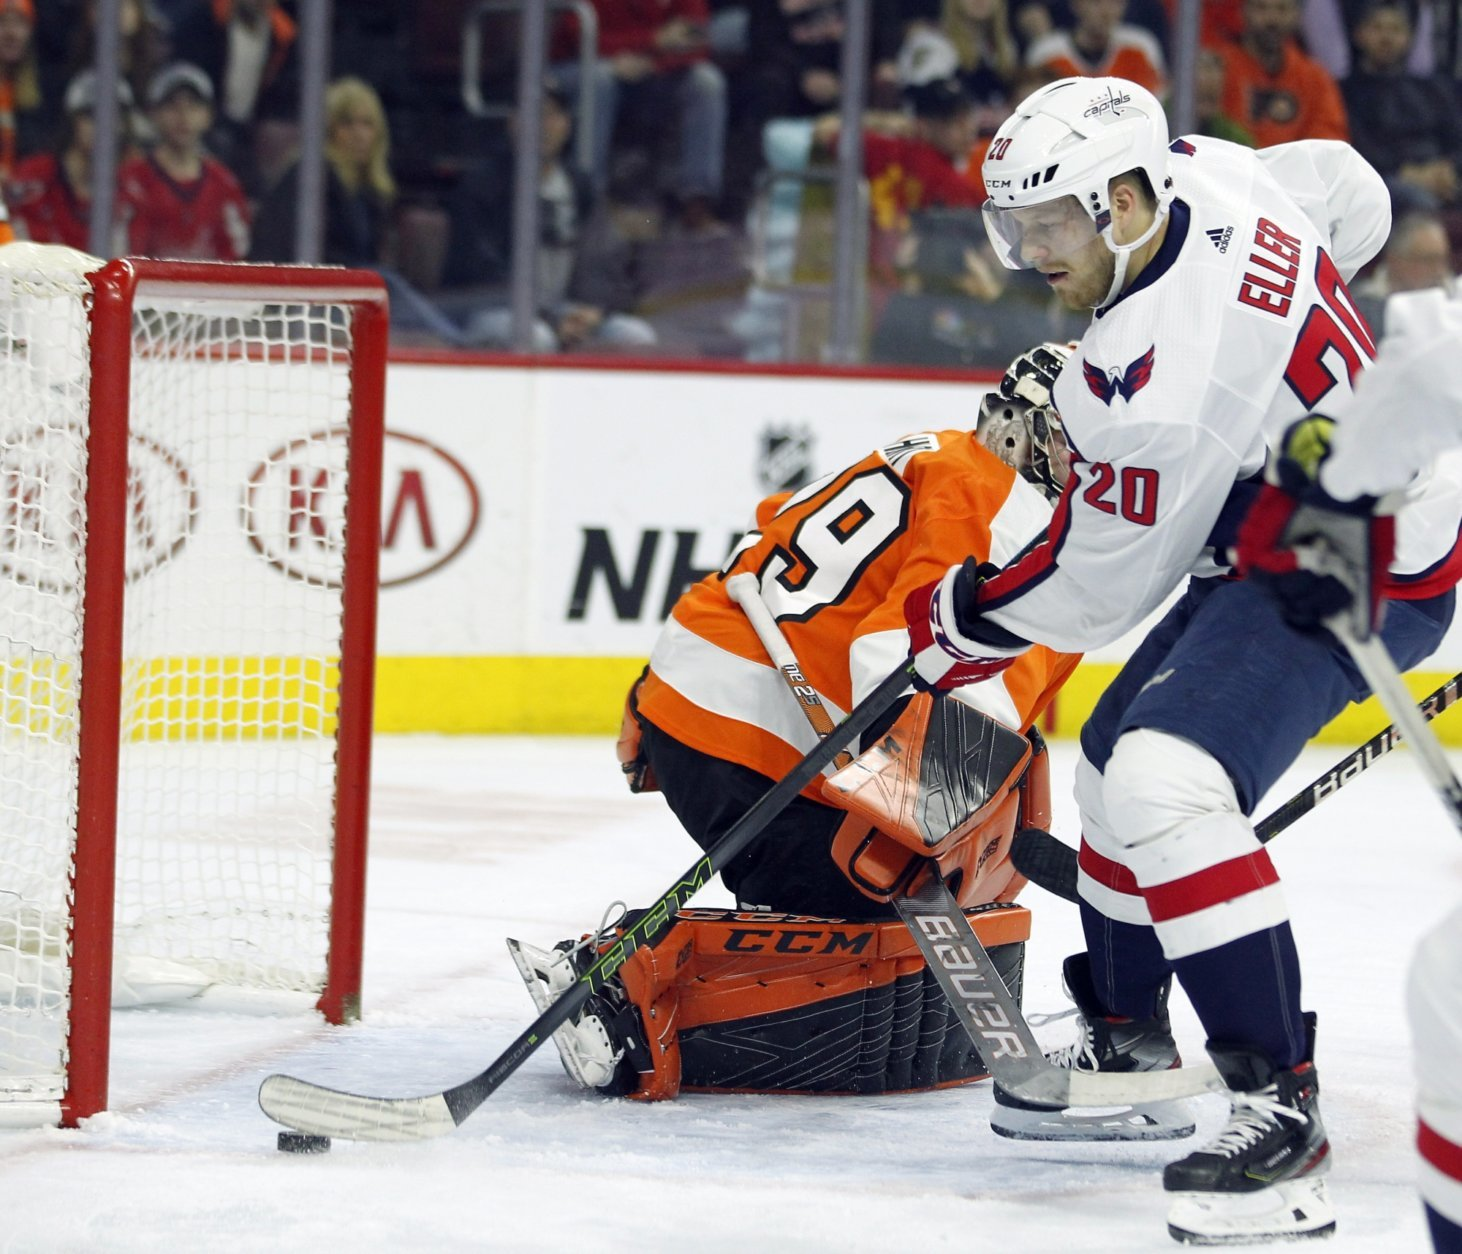 Washington Capitals' Lars Eller gets the puck past Philadelphia Flyers goalie Carter Hart for a goal during the first period of an NHL hockey game Thursday, March 14, 2019, in Philadelphia. (AP Photo/Tom Mihalek)